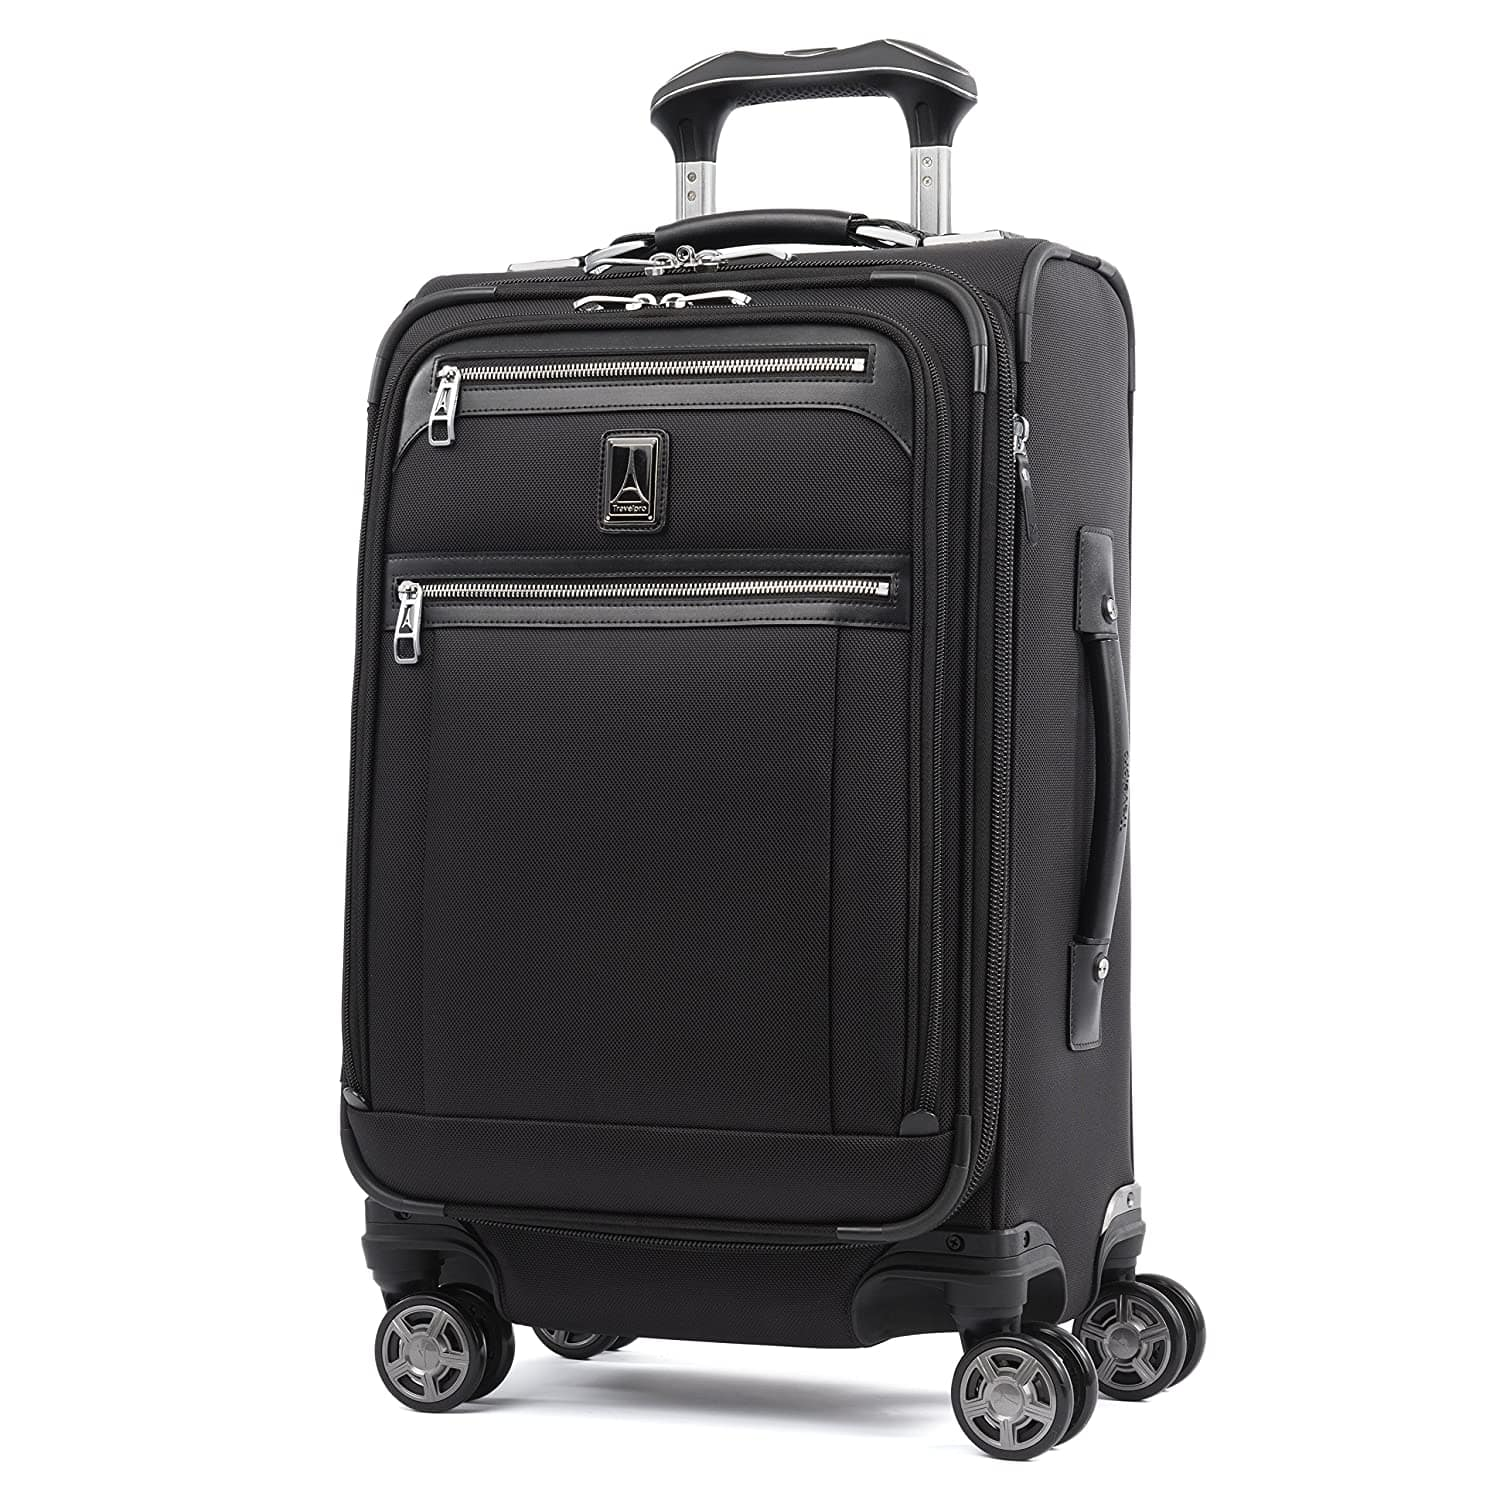 """Travelpro Platinum Elite 21"""" Spinner in multiple colors starting at $159; Crew 10 at $80"""